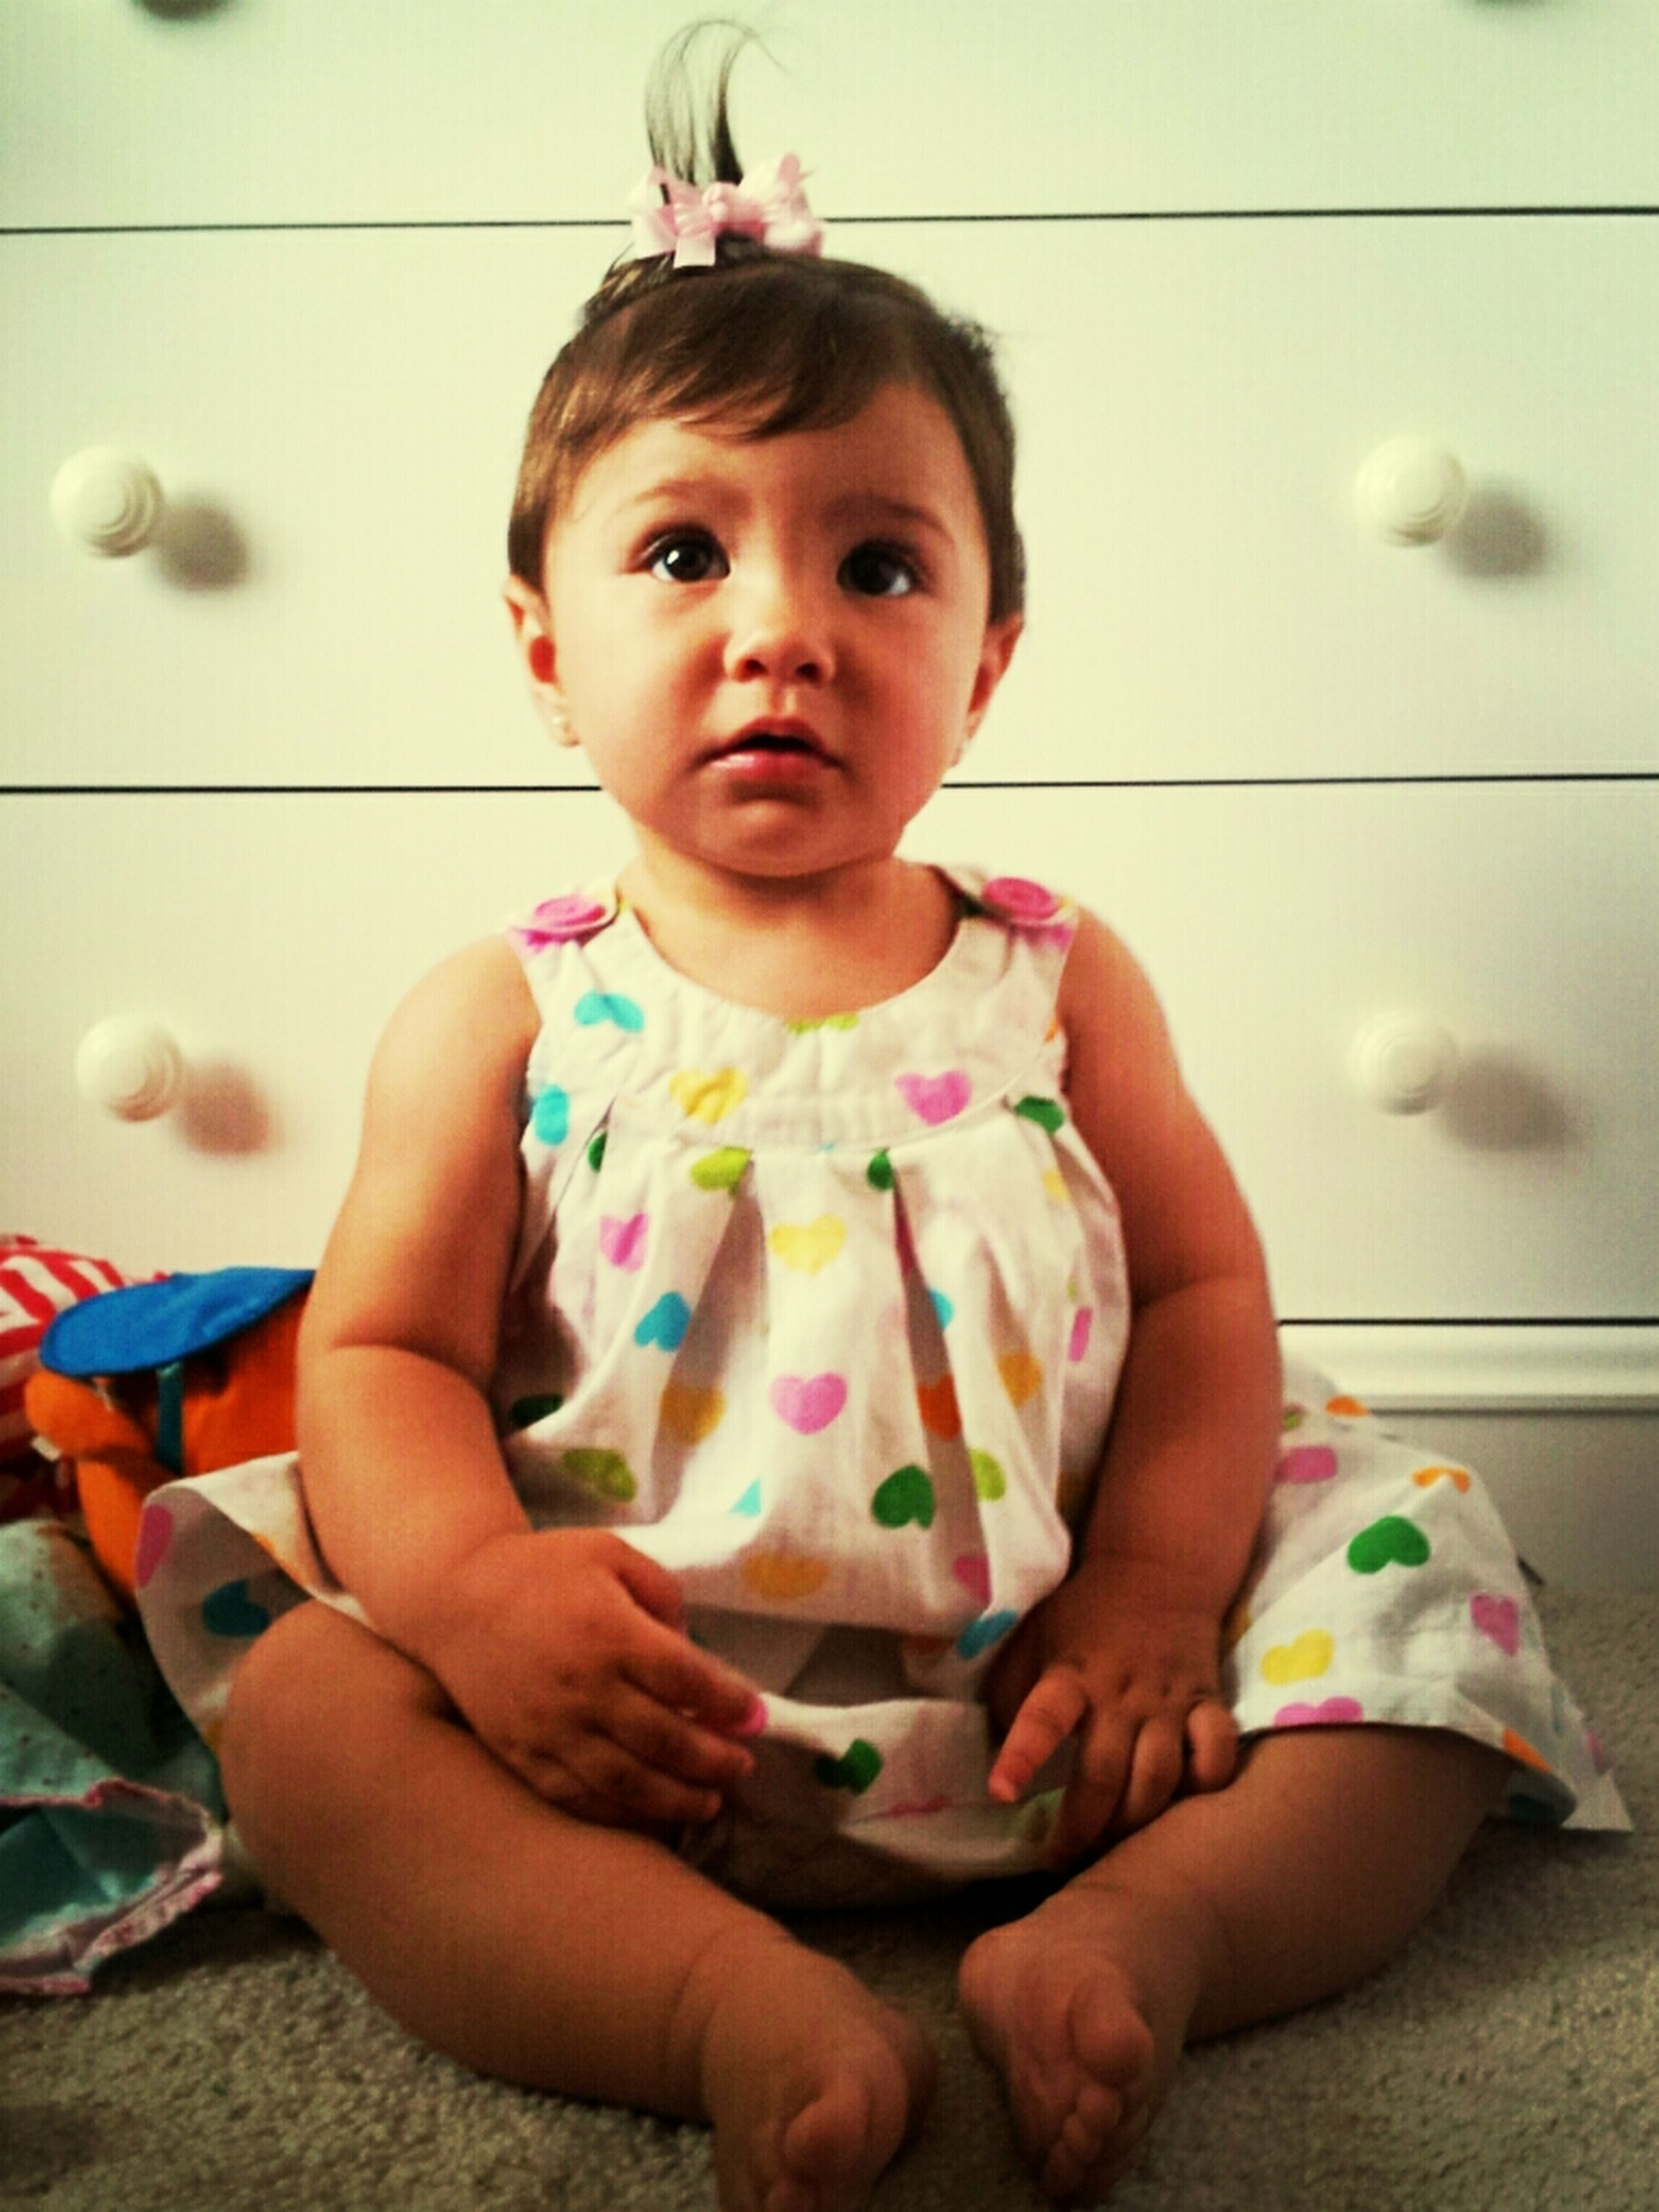 childhood, elementary age, cute, innocence, boys, person, toddler, girls, baby, babyhood, looking at camera, portrait, lifestyles, indoors, playful, leisure activity, preschool age, casual clothing